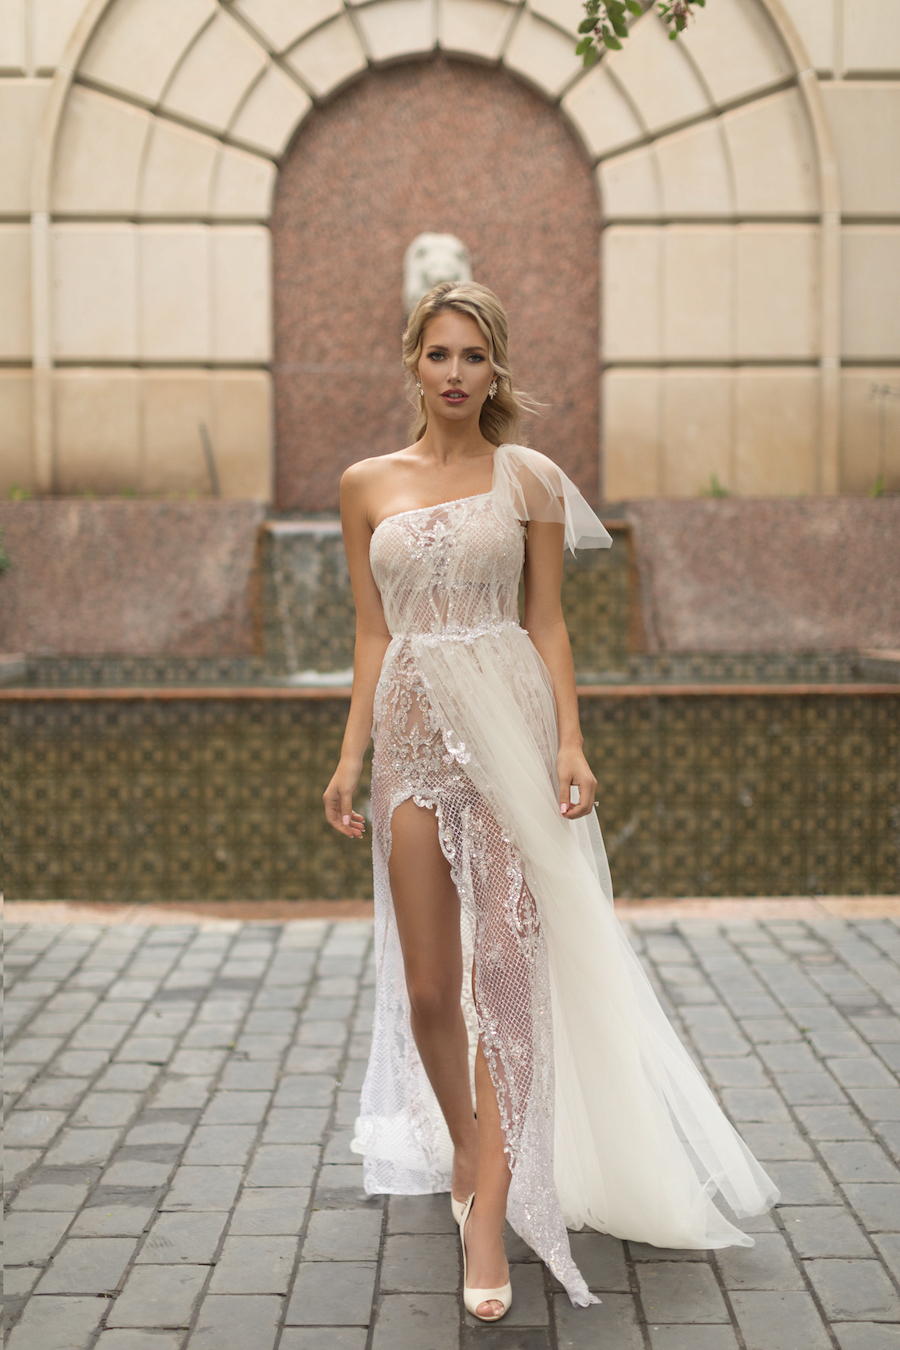 Naama and Anat Haute Couture, Wedding Dress Trends, 2018 Wedding Dress Trends, Naama and Anat Bridal, Couture Wedding Dress, Luxury Wedding Gown, Cha Cha Gown, Dancing up the Aisle